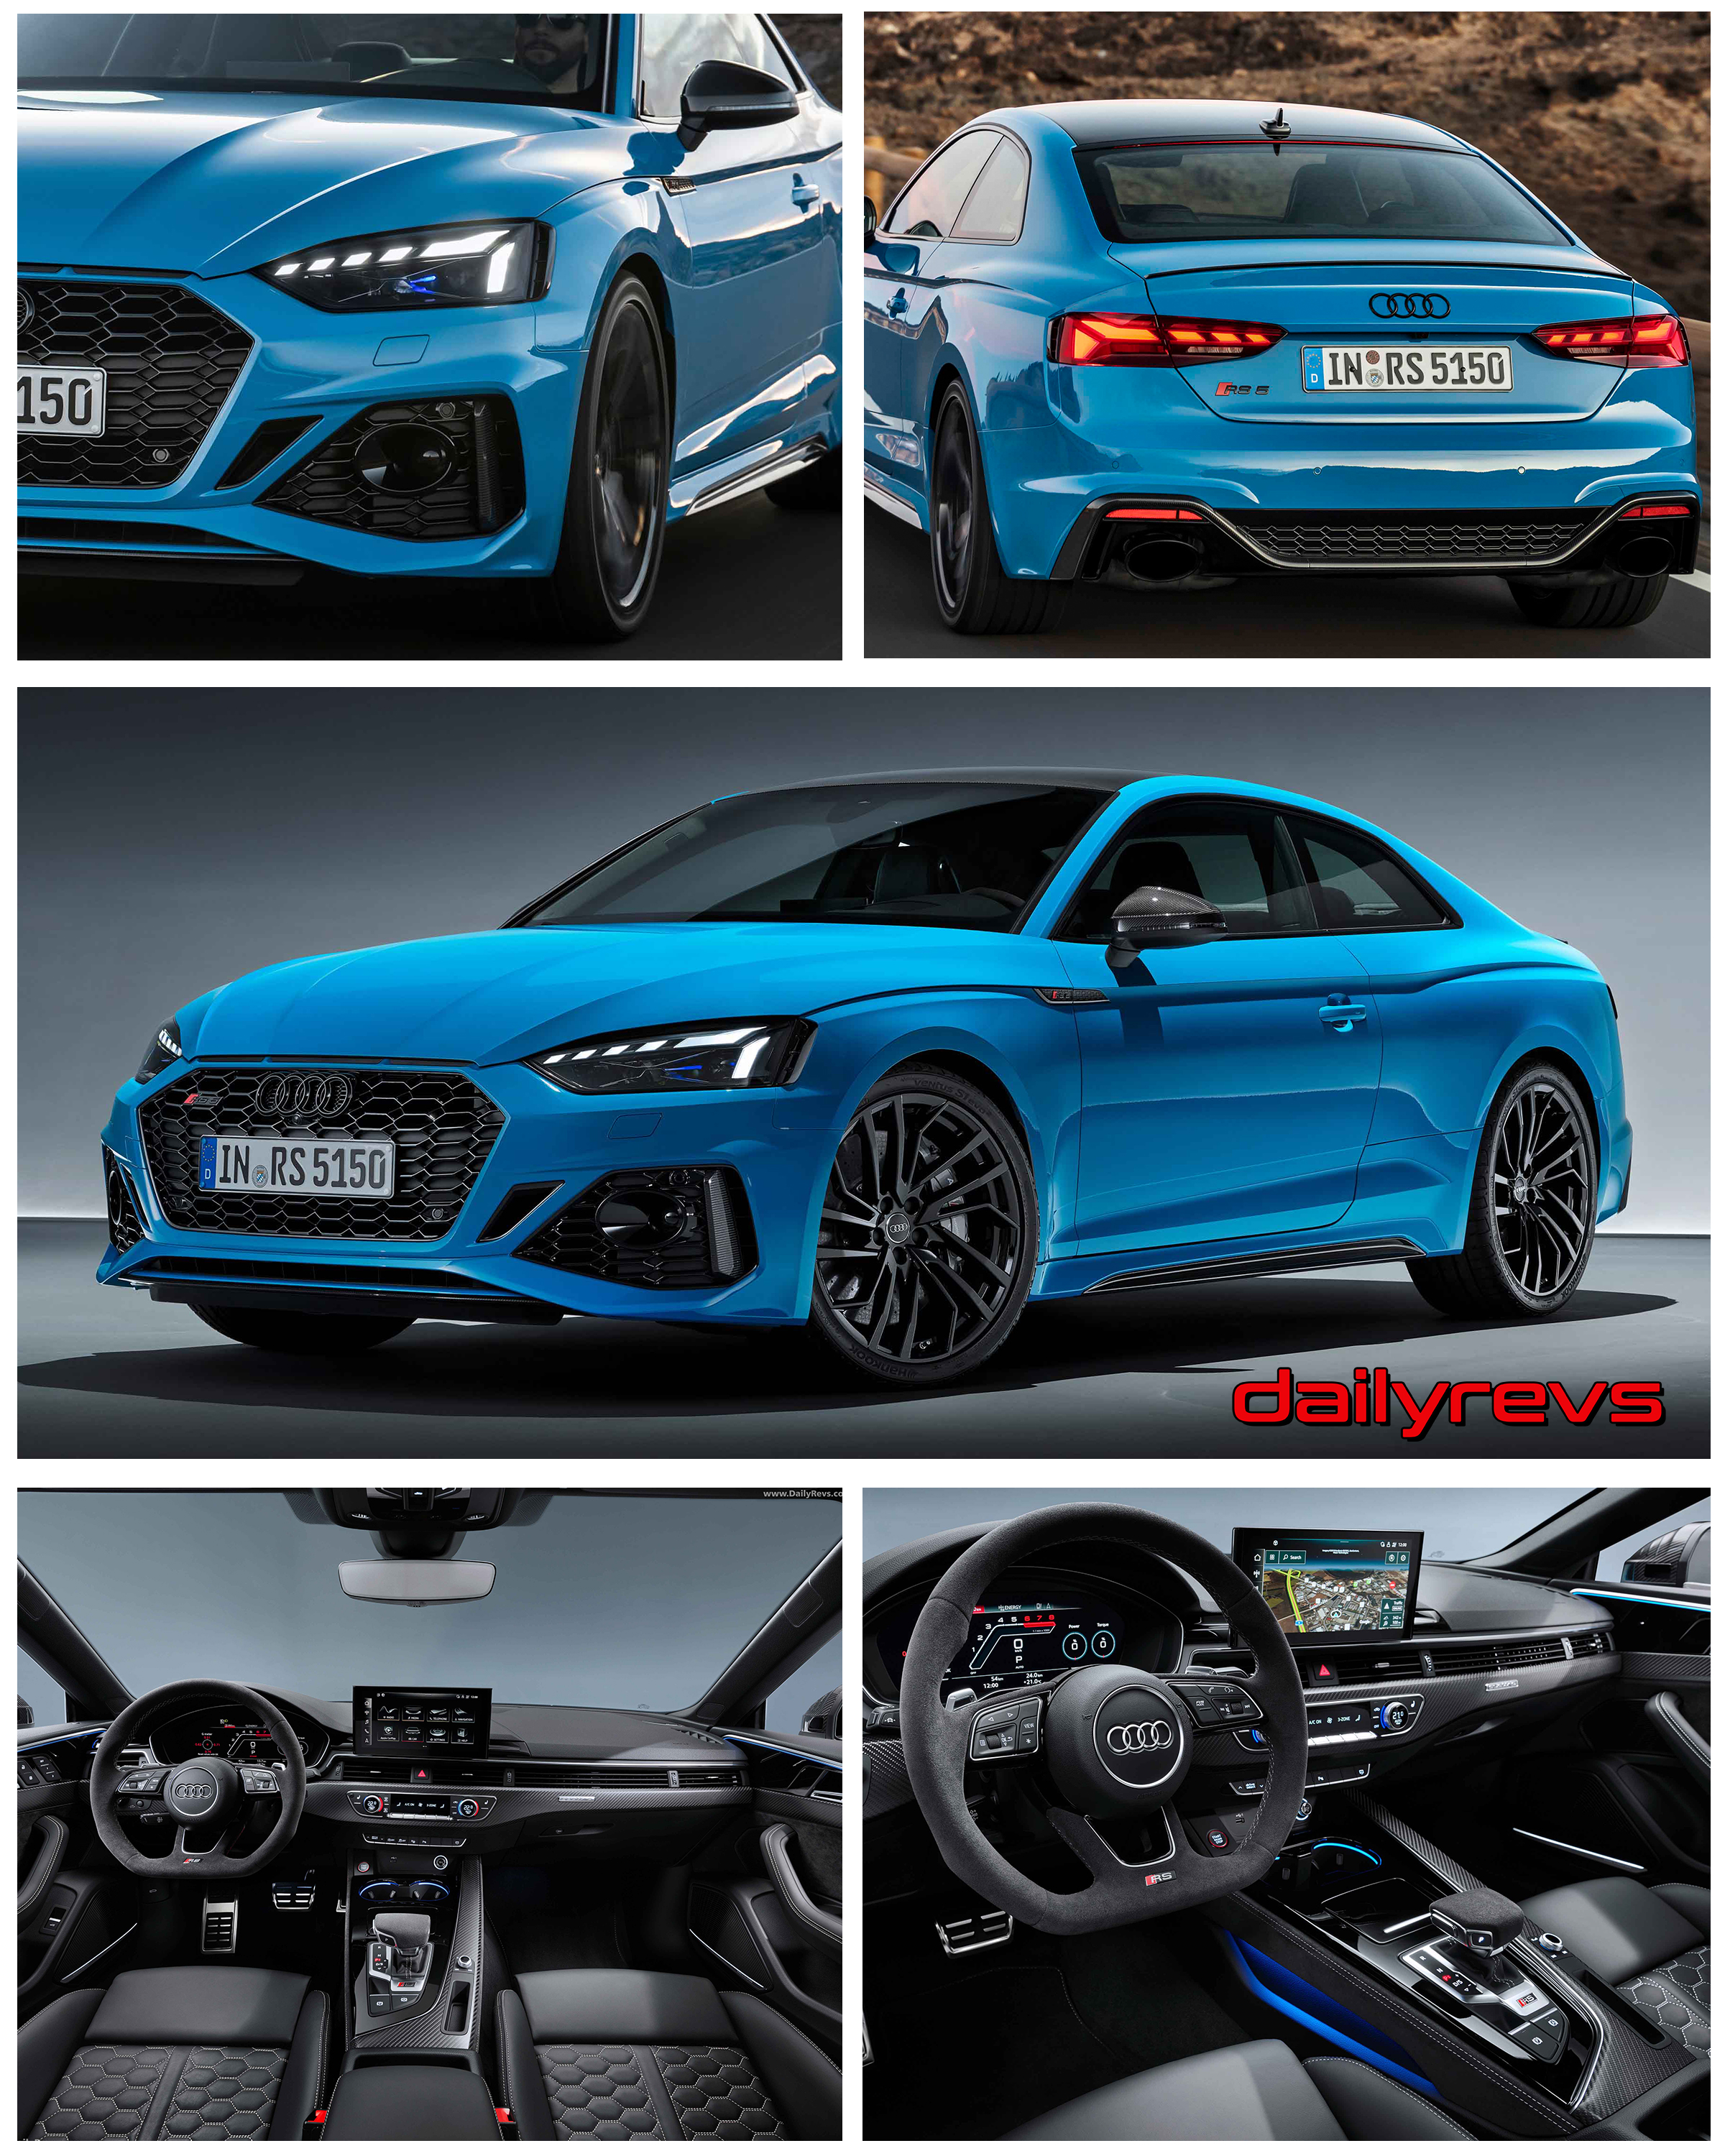 2020 Audi Rs5 Coupe Hd Pictures Videos Specs Information Dailyrevs